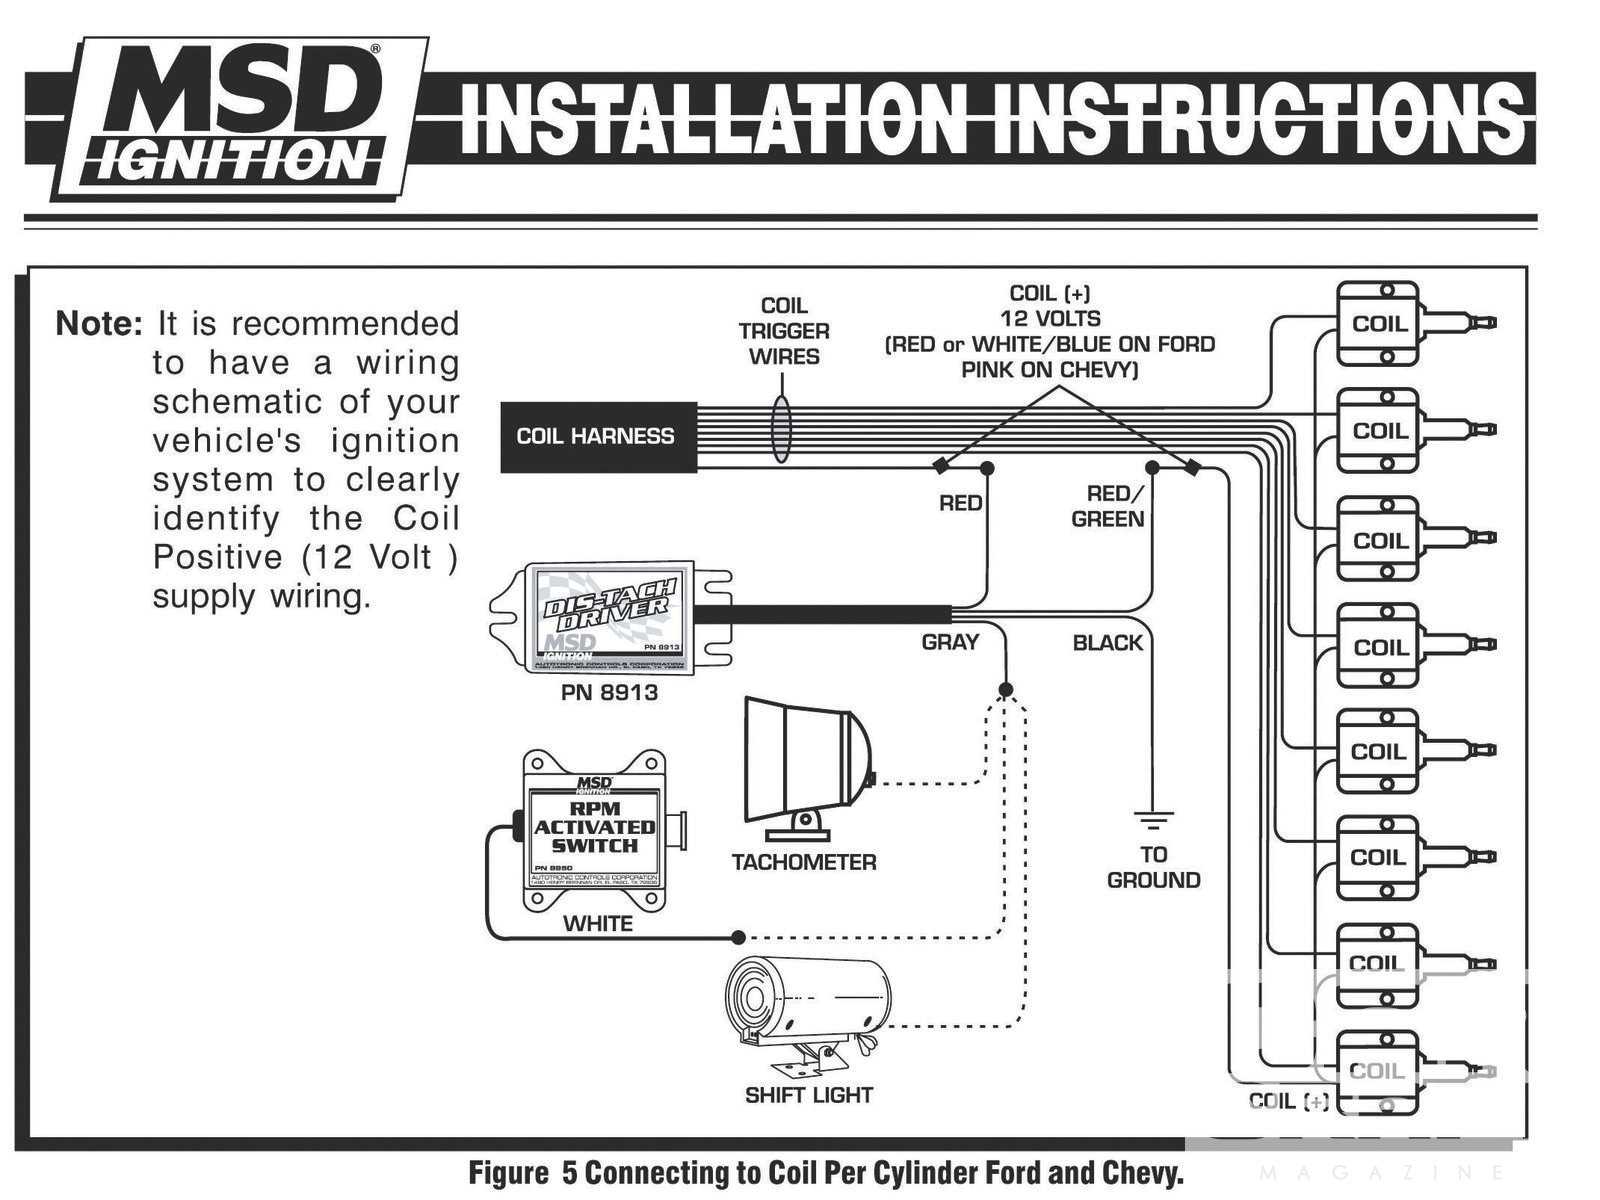 ccrp 1202 quick tech electronic ignition tach install 003?resize=665%2C499 autometer c2 tach wiring diagram wiring diagram autometer c2 tach wiring diagram at soozxer.org